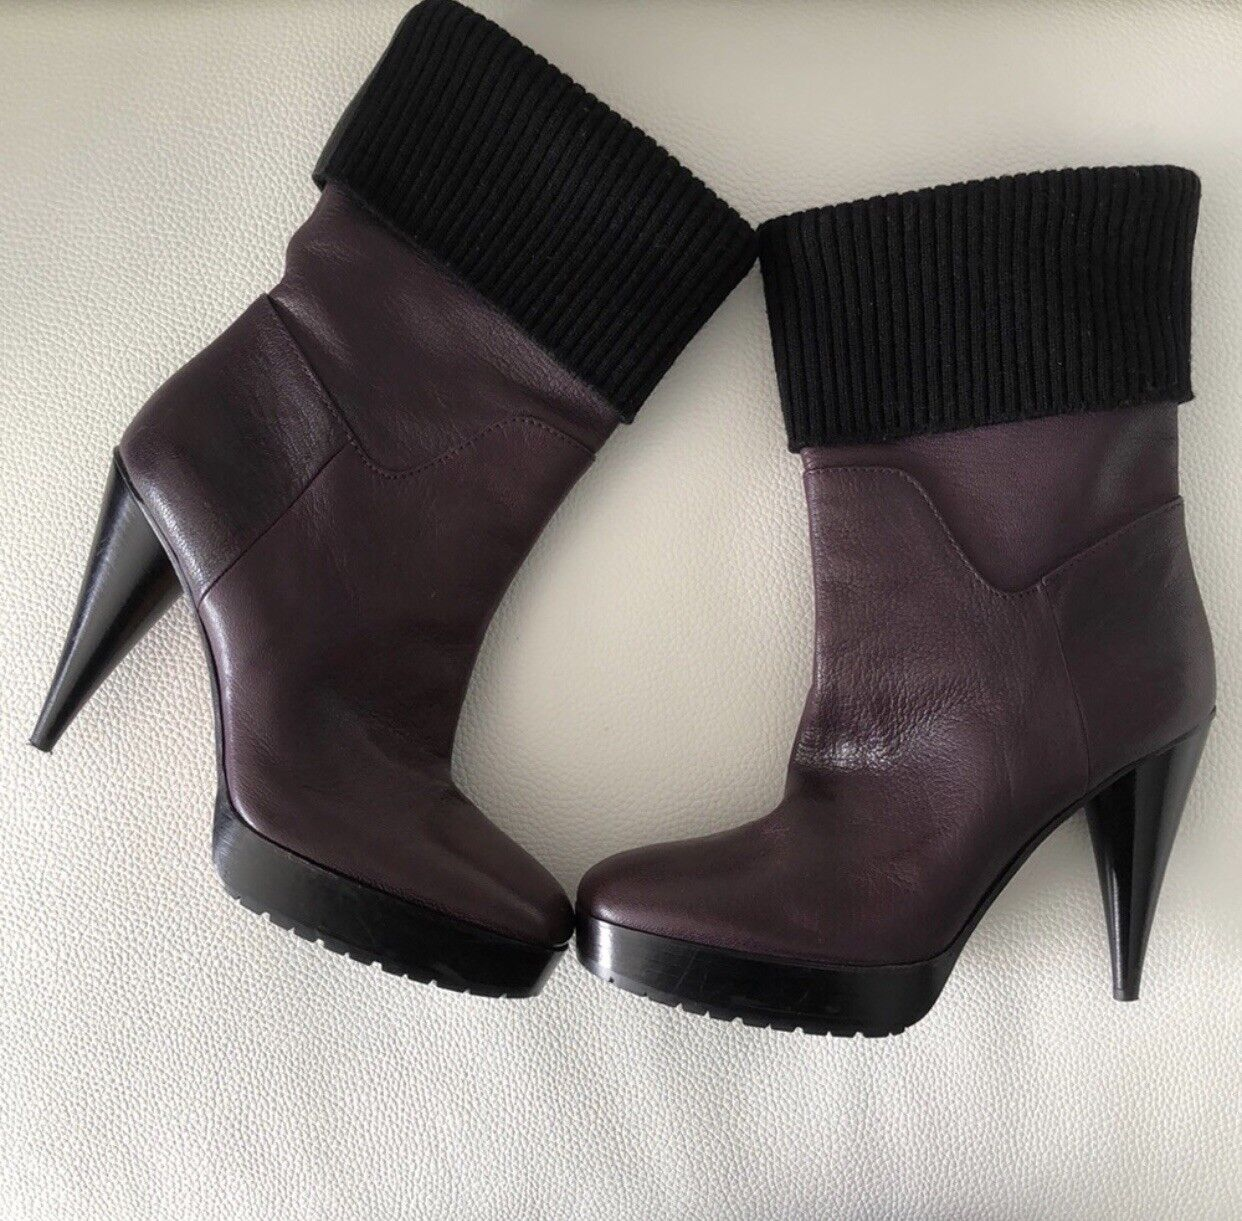 Lanvin Leather Deep Purple Platform Boots with Black Fabric Top Never Worn